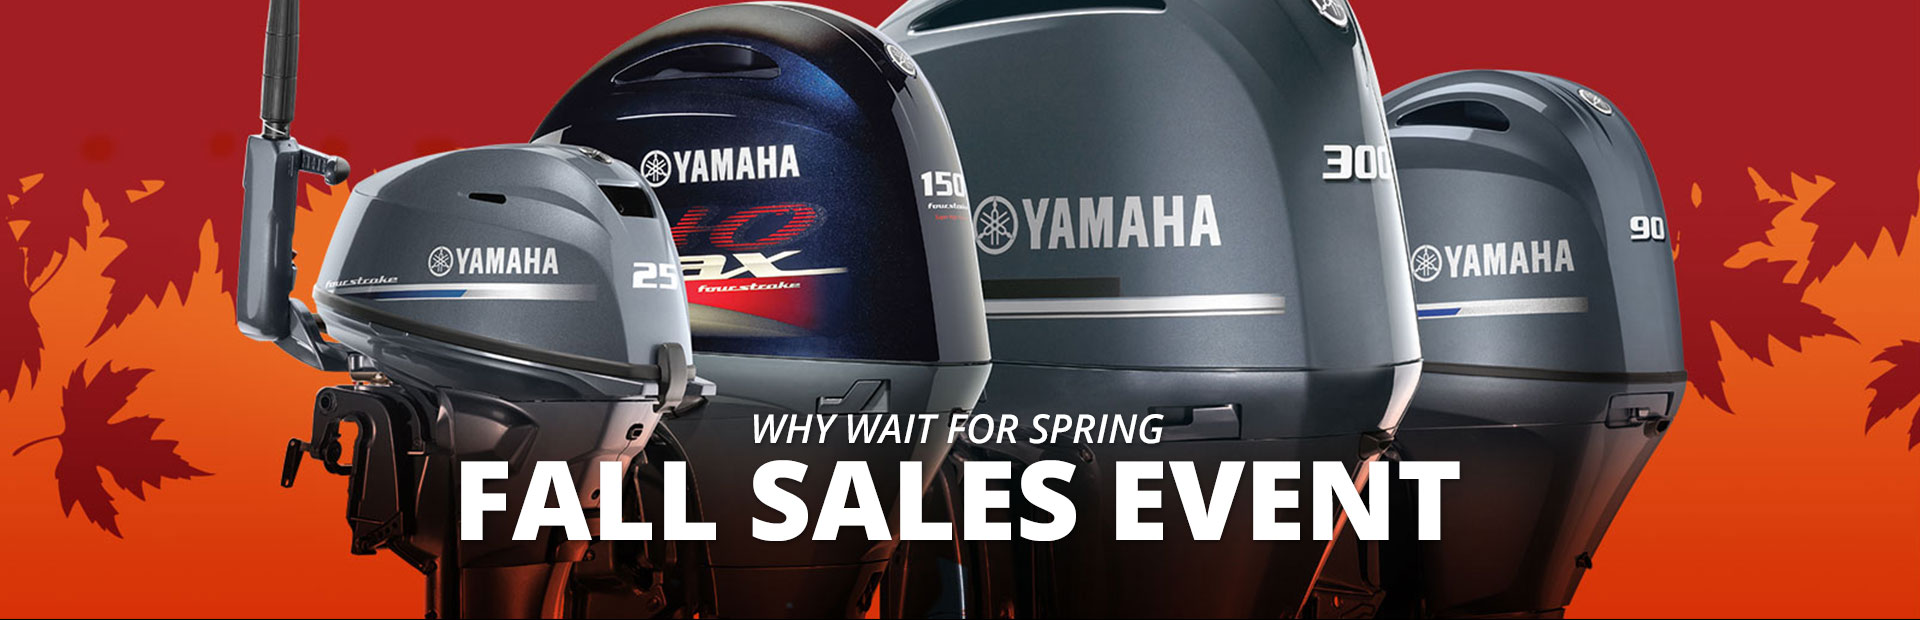 Yamaha: Why Wait For Spring - Fall Sales Event